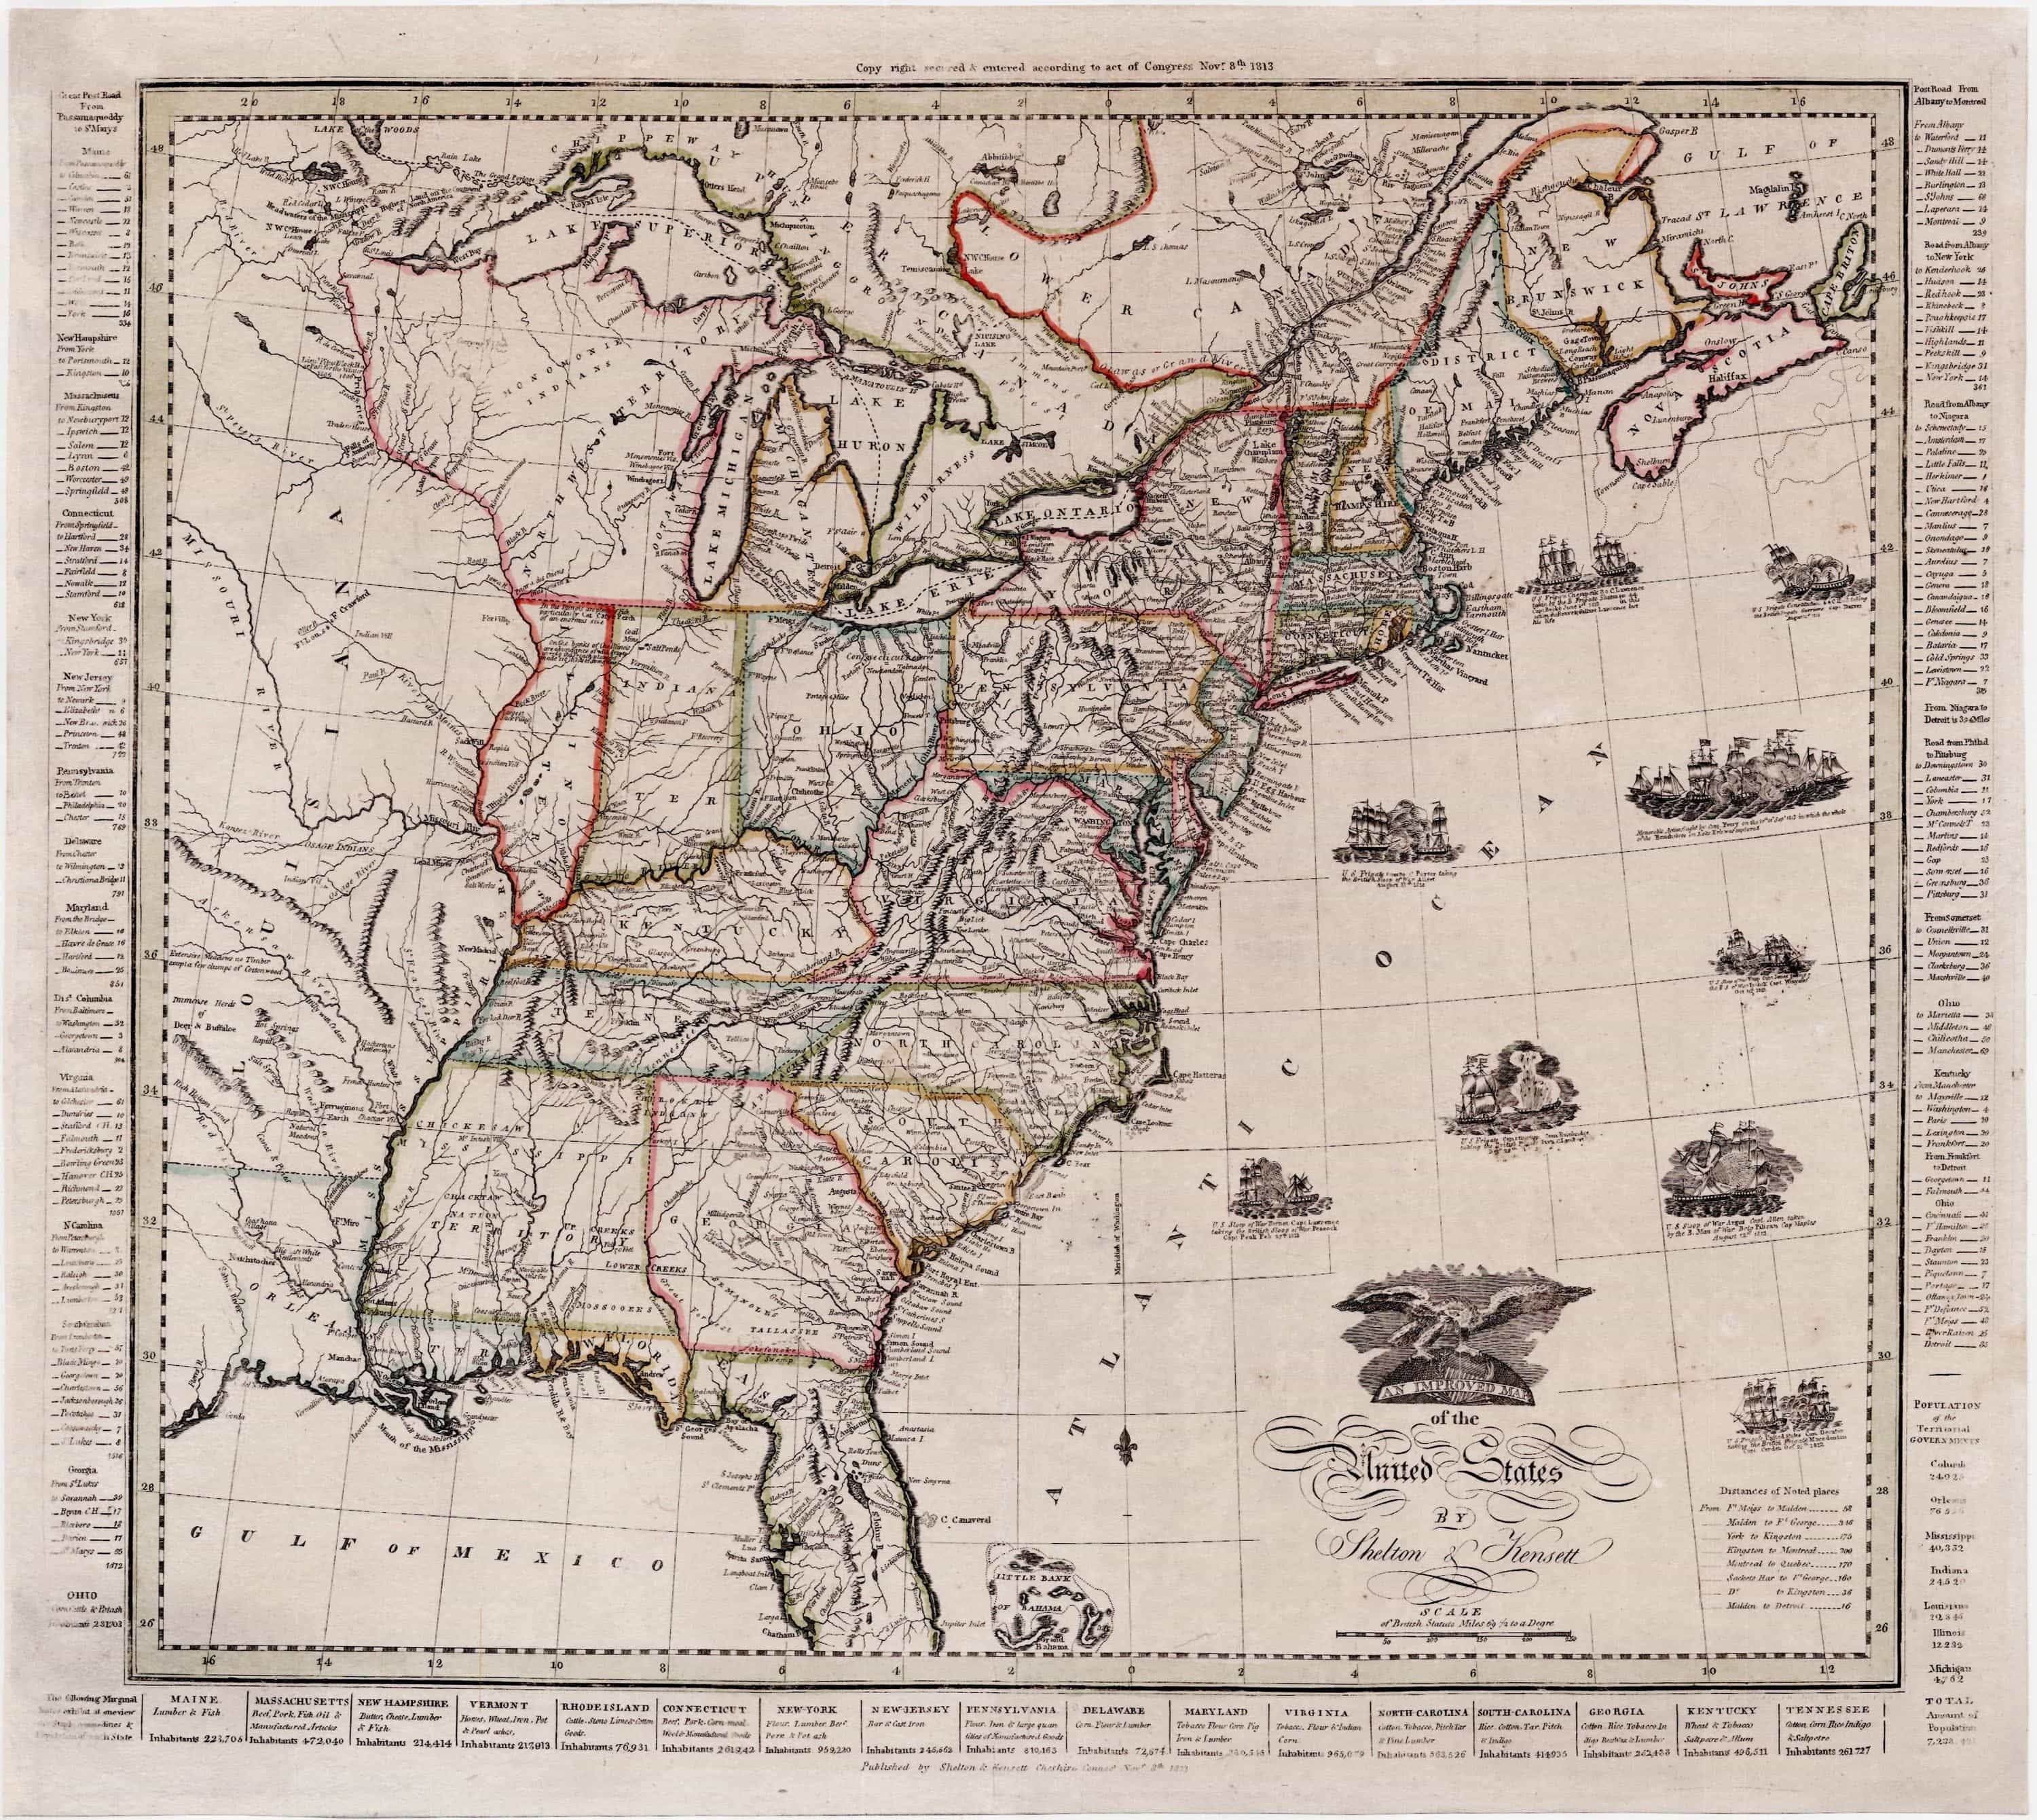 Patriotic Improved Map Of The United States From The War Of 1812